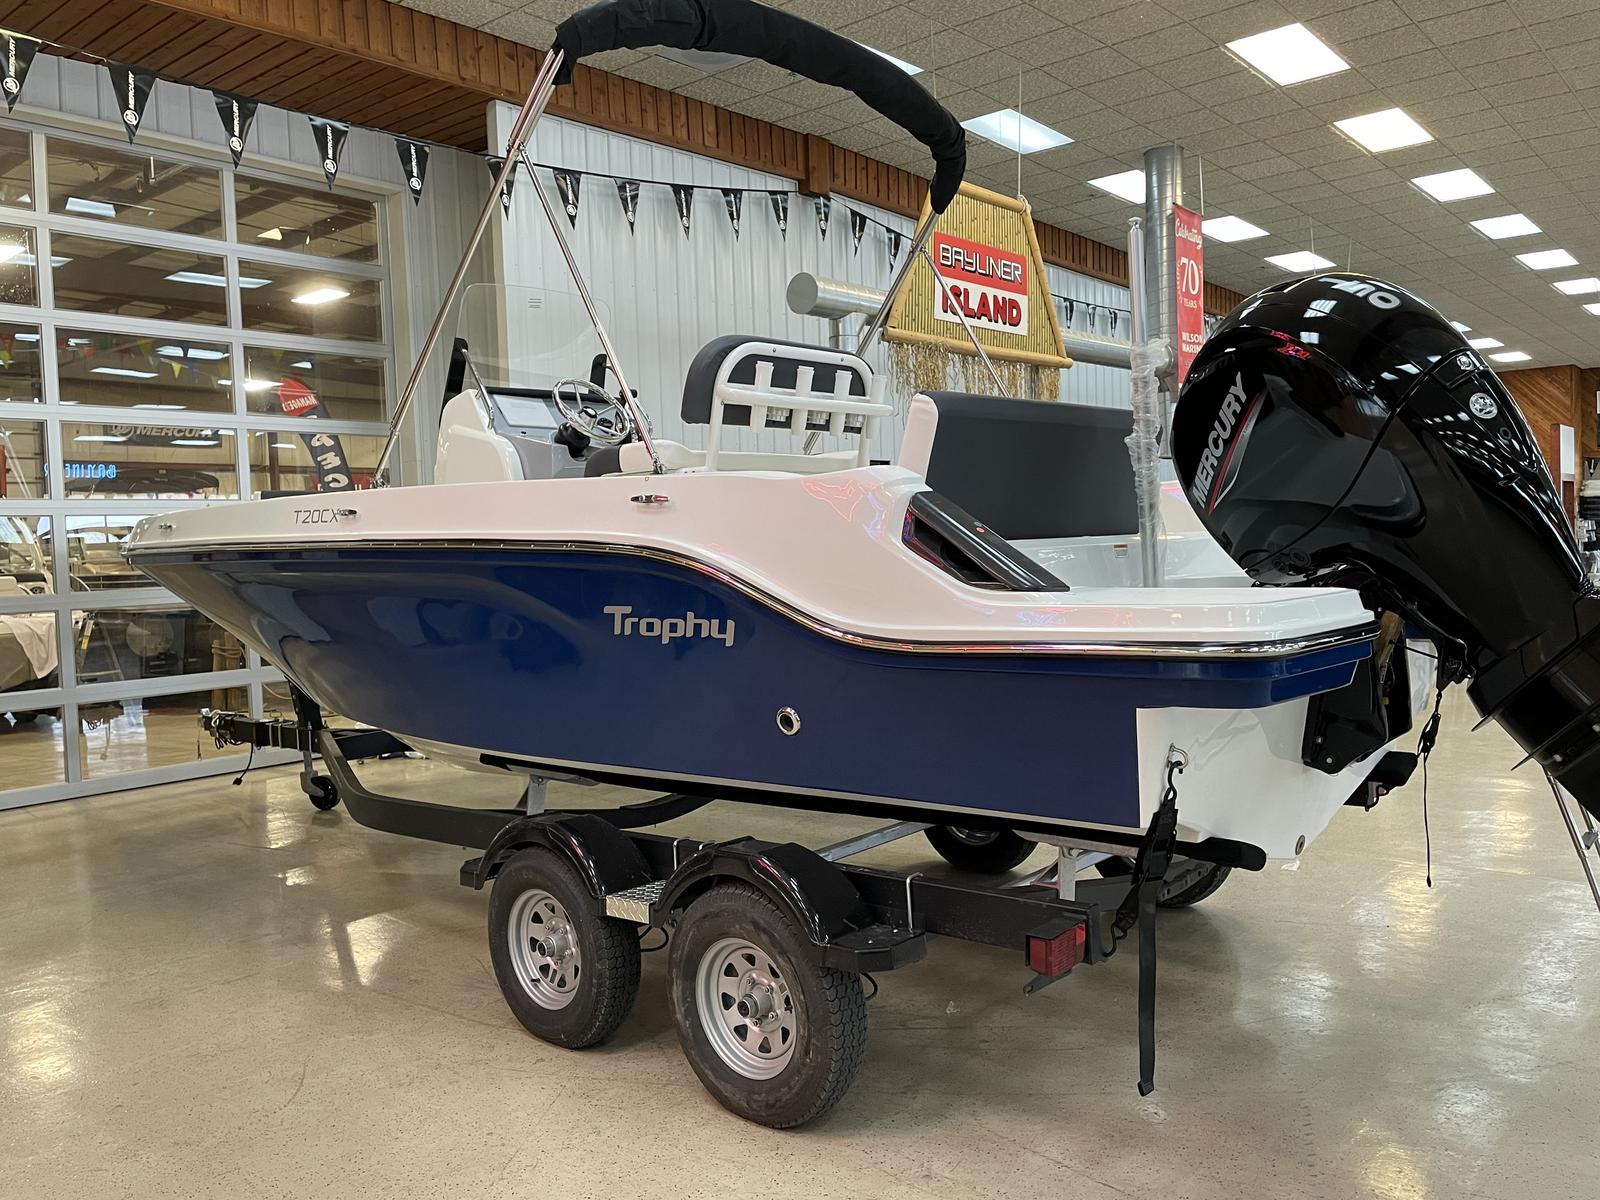 2021 Bayliner boat for sale, model of the boat is T20CC & Image # 3 of 12